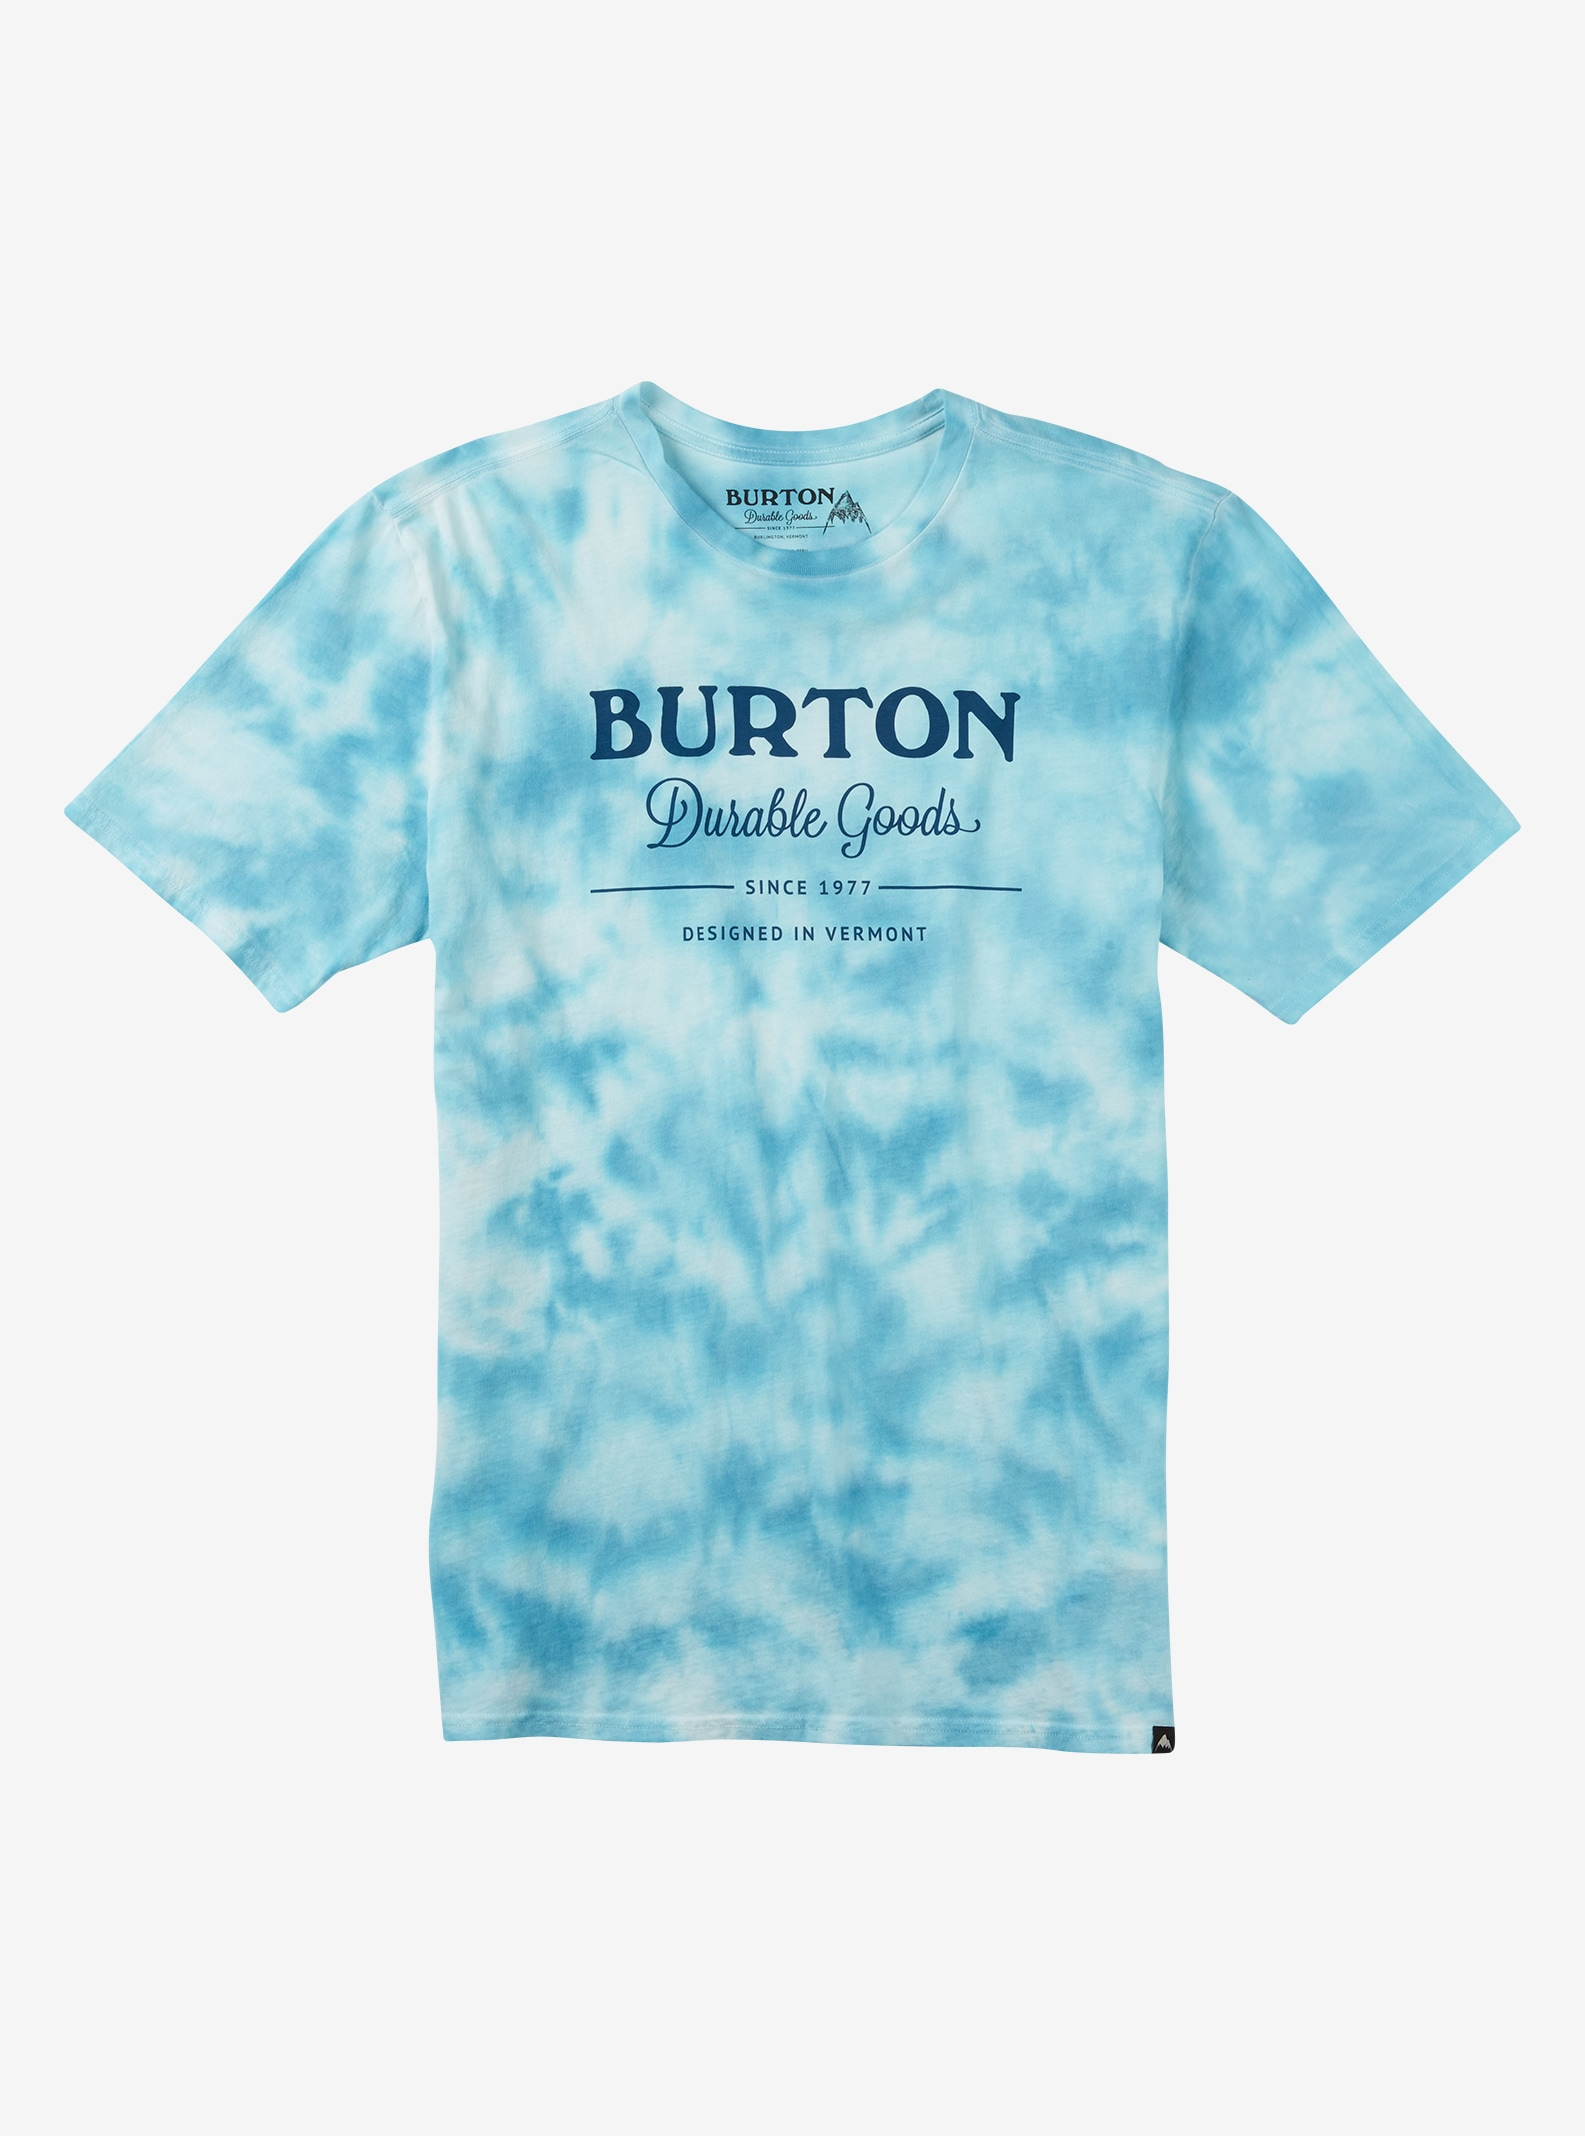 Burton Washed Up Short Sleeve T Shirt shown in Durable Goods Tie Dye